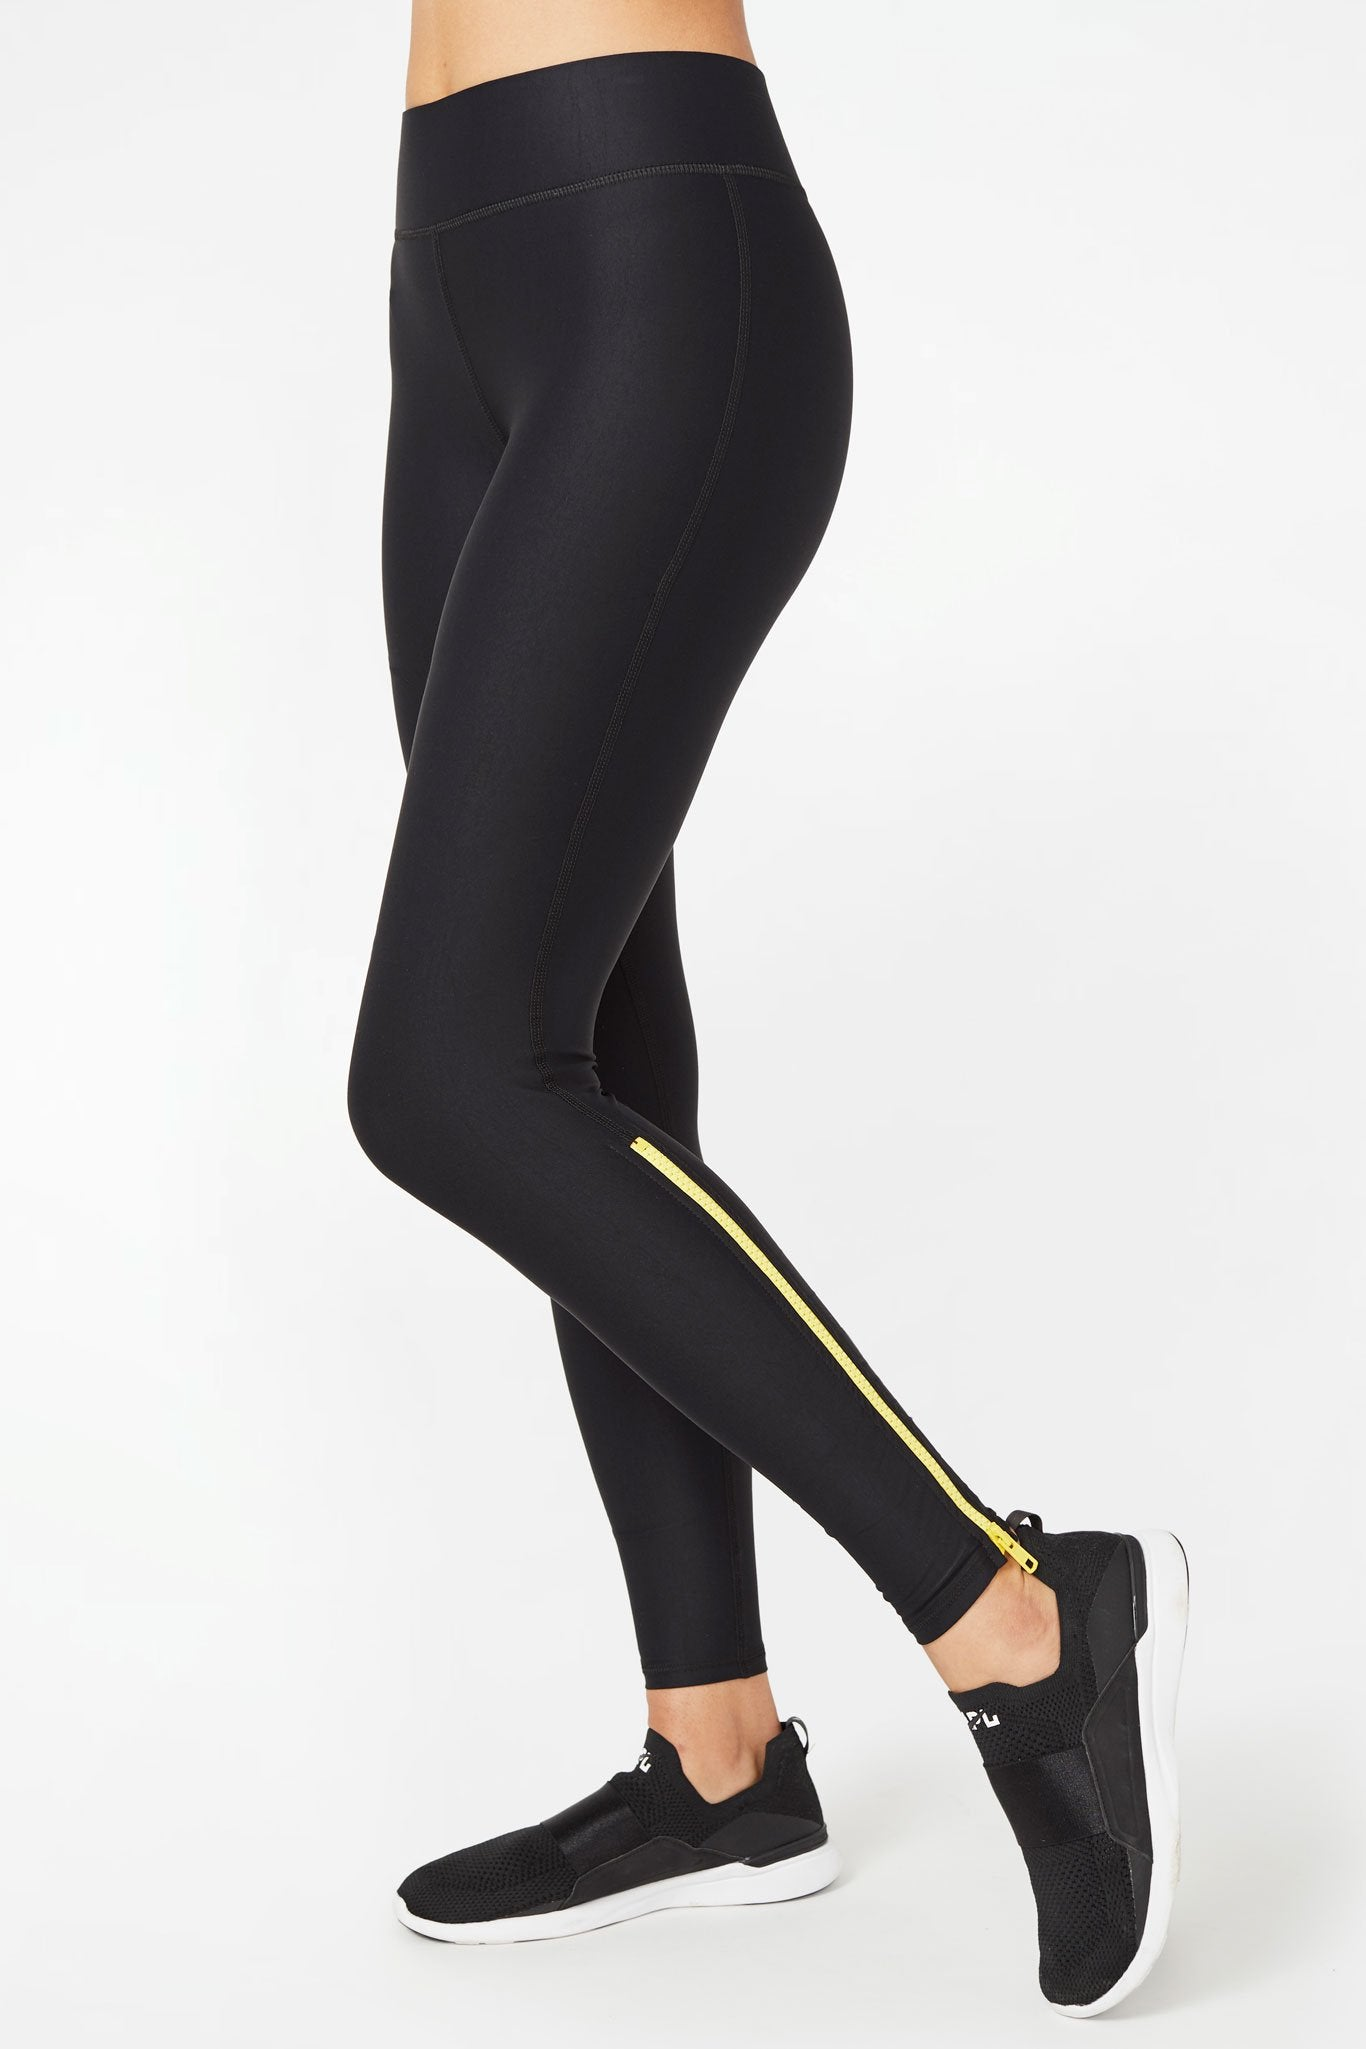 Yellow Zipper UpLift Leggings